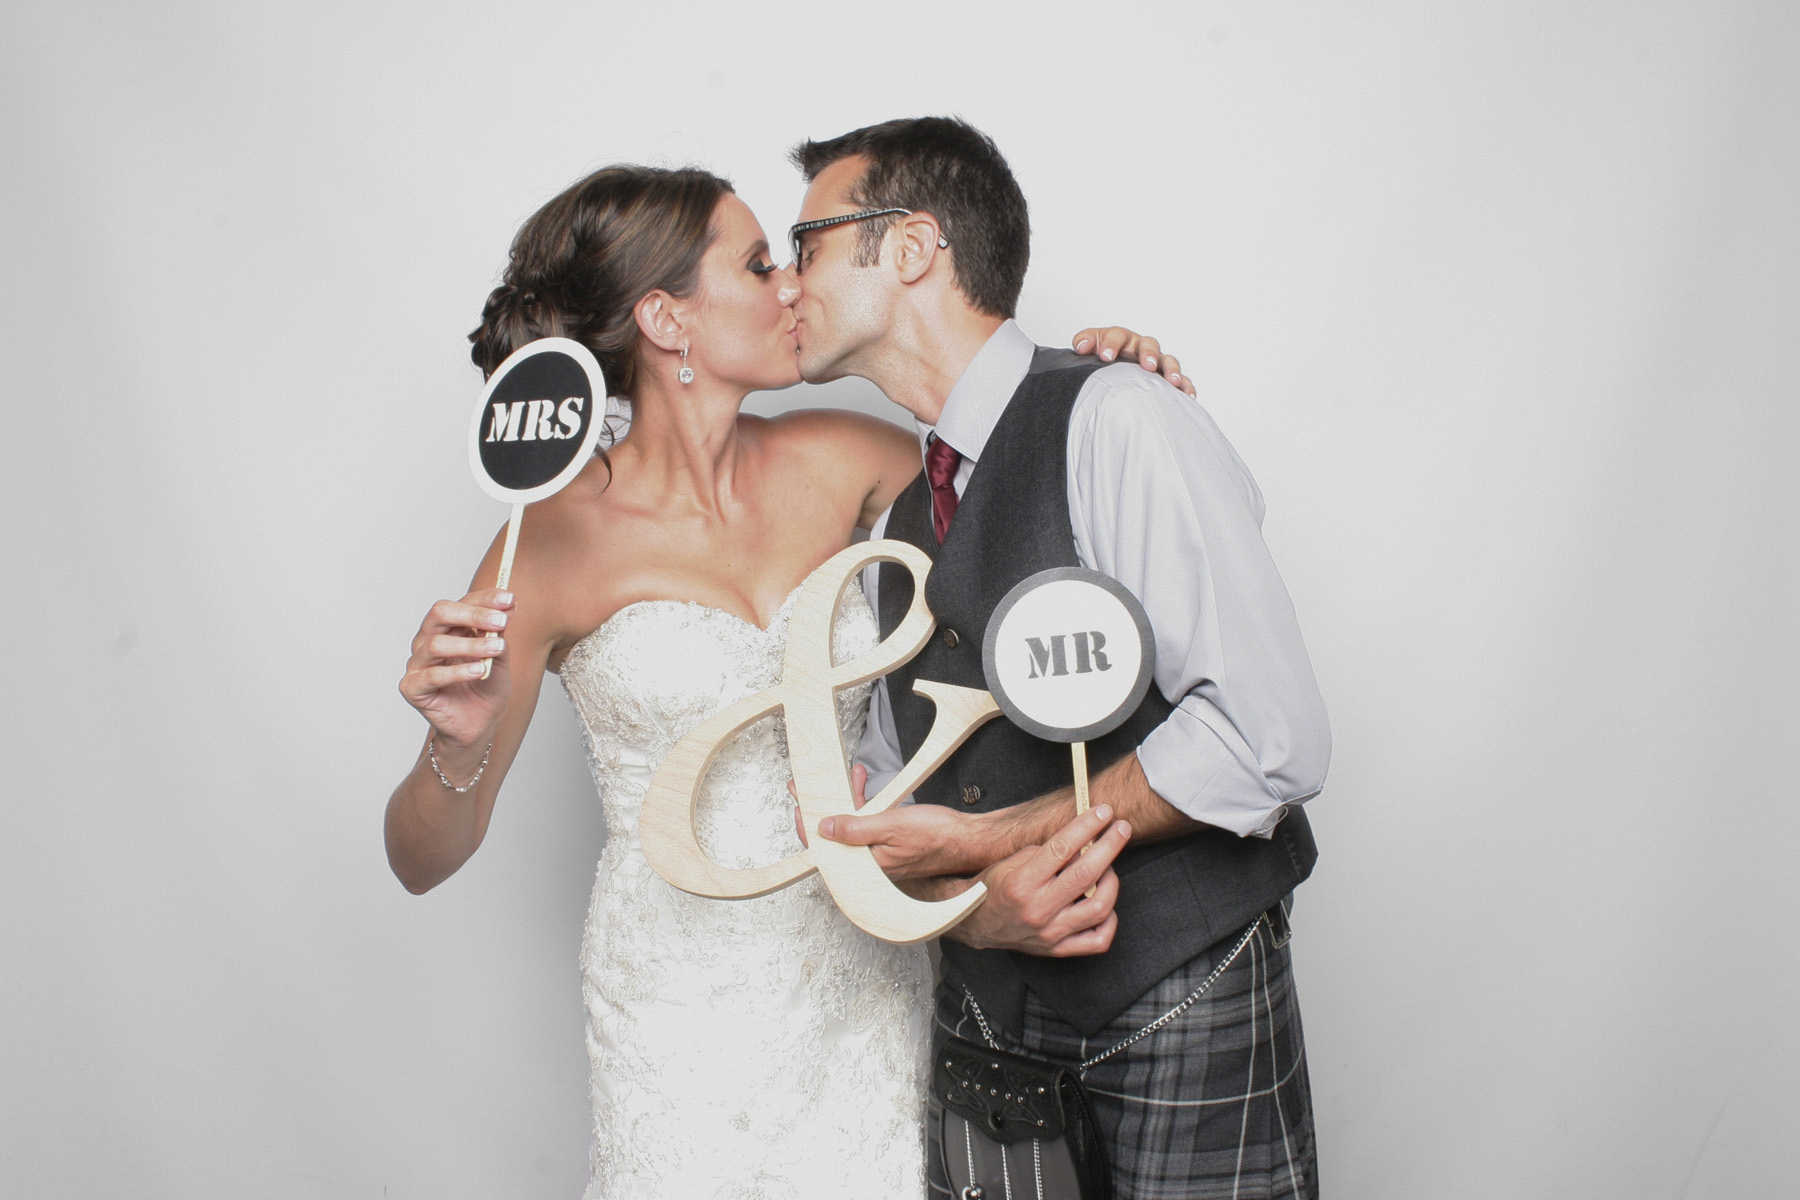 The bride and groom from a Scottish wedding kissing in the photo booth.